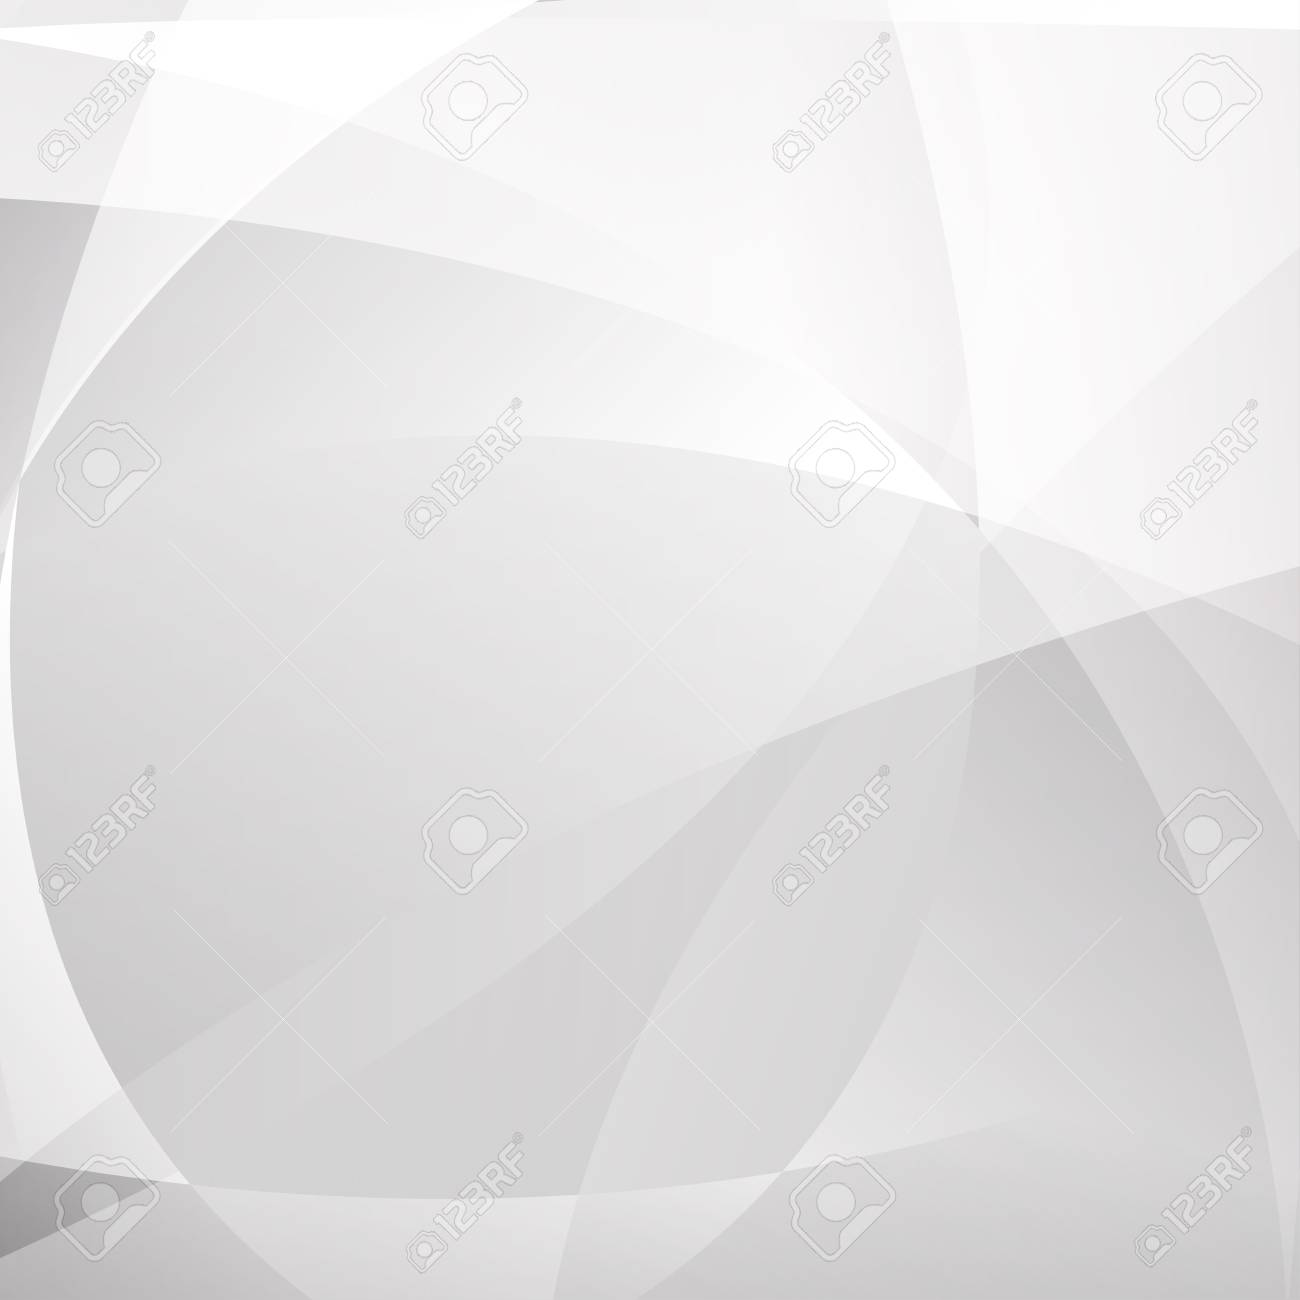 Abstract geometric modern white and gray color background, light and shadow, vector illustration. - 125940483